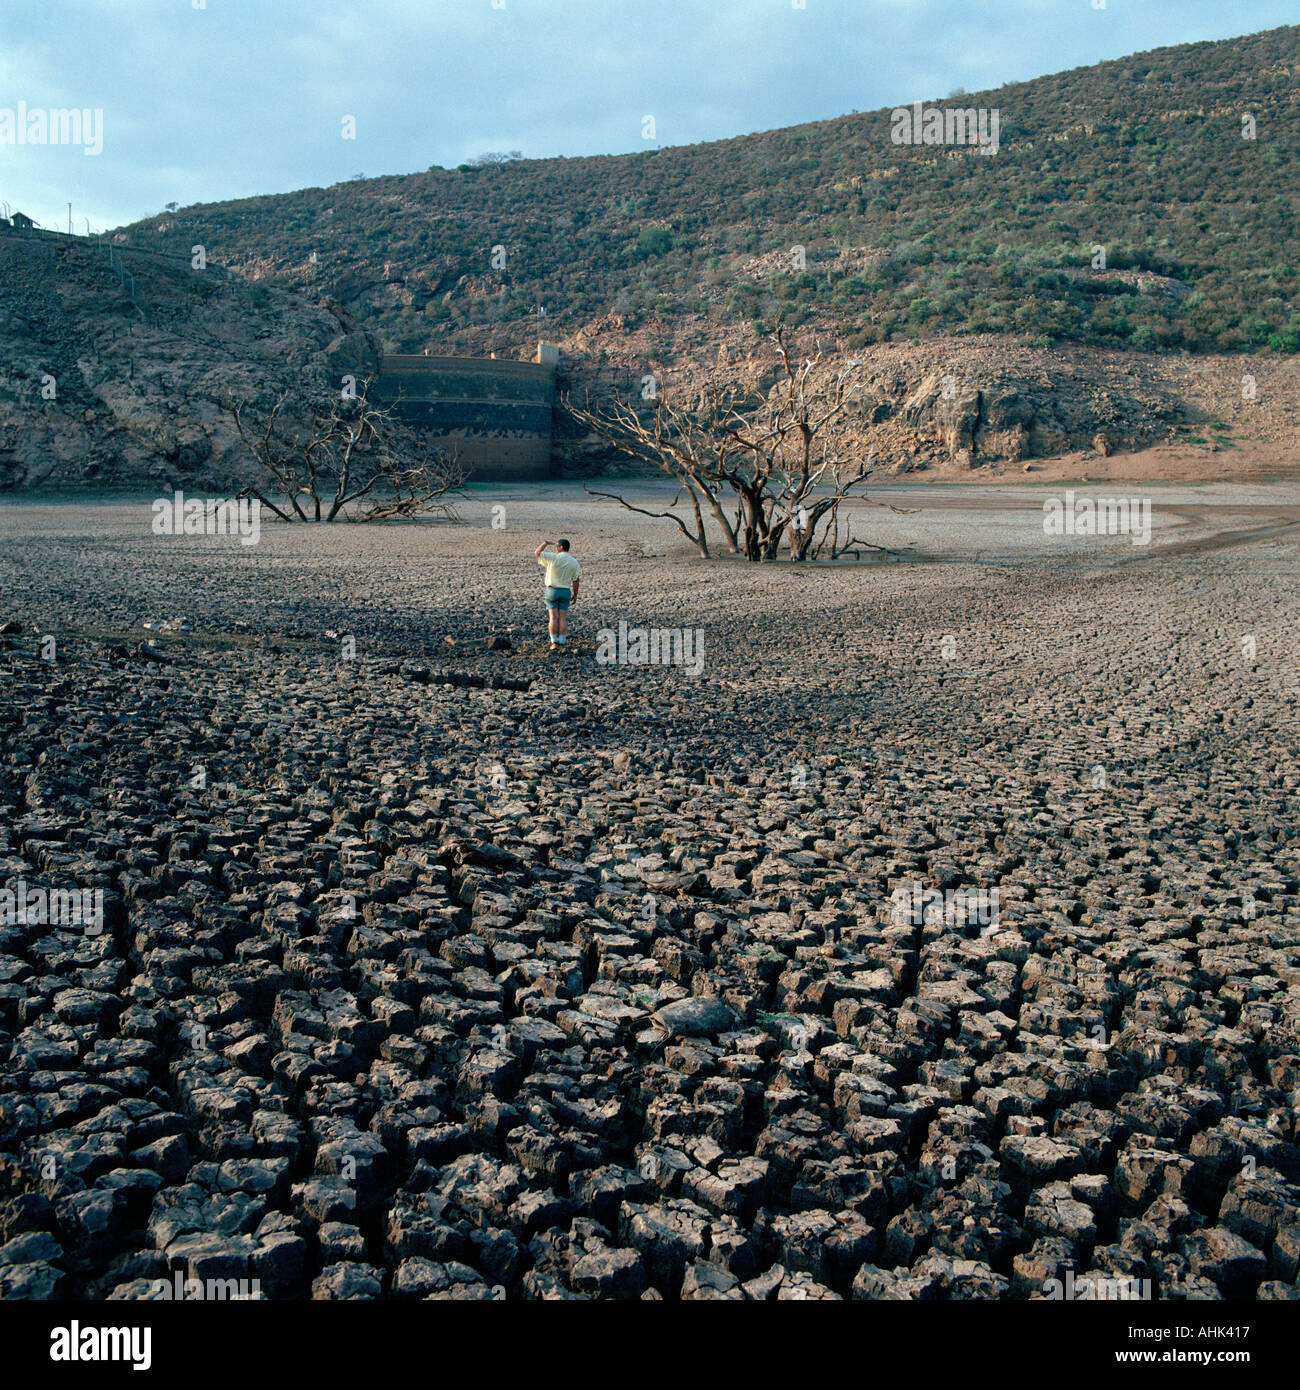 Bed of the dried up Njelele Dam in Venda, South Africa during a time of periodic drought. - Stock Image